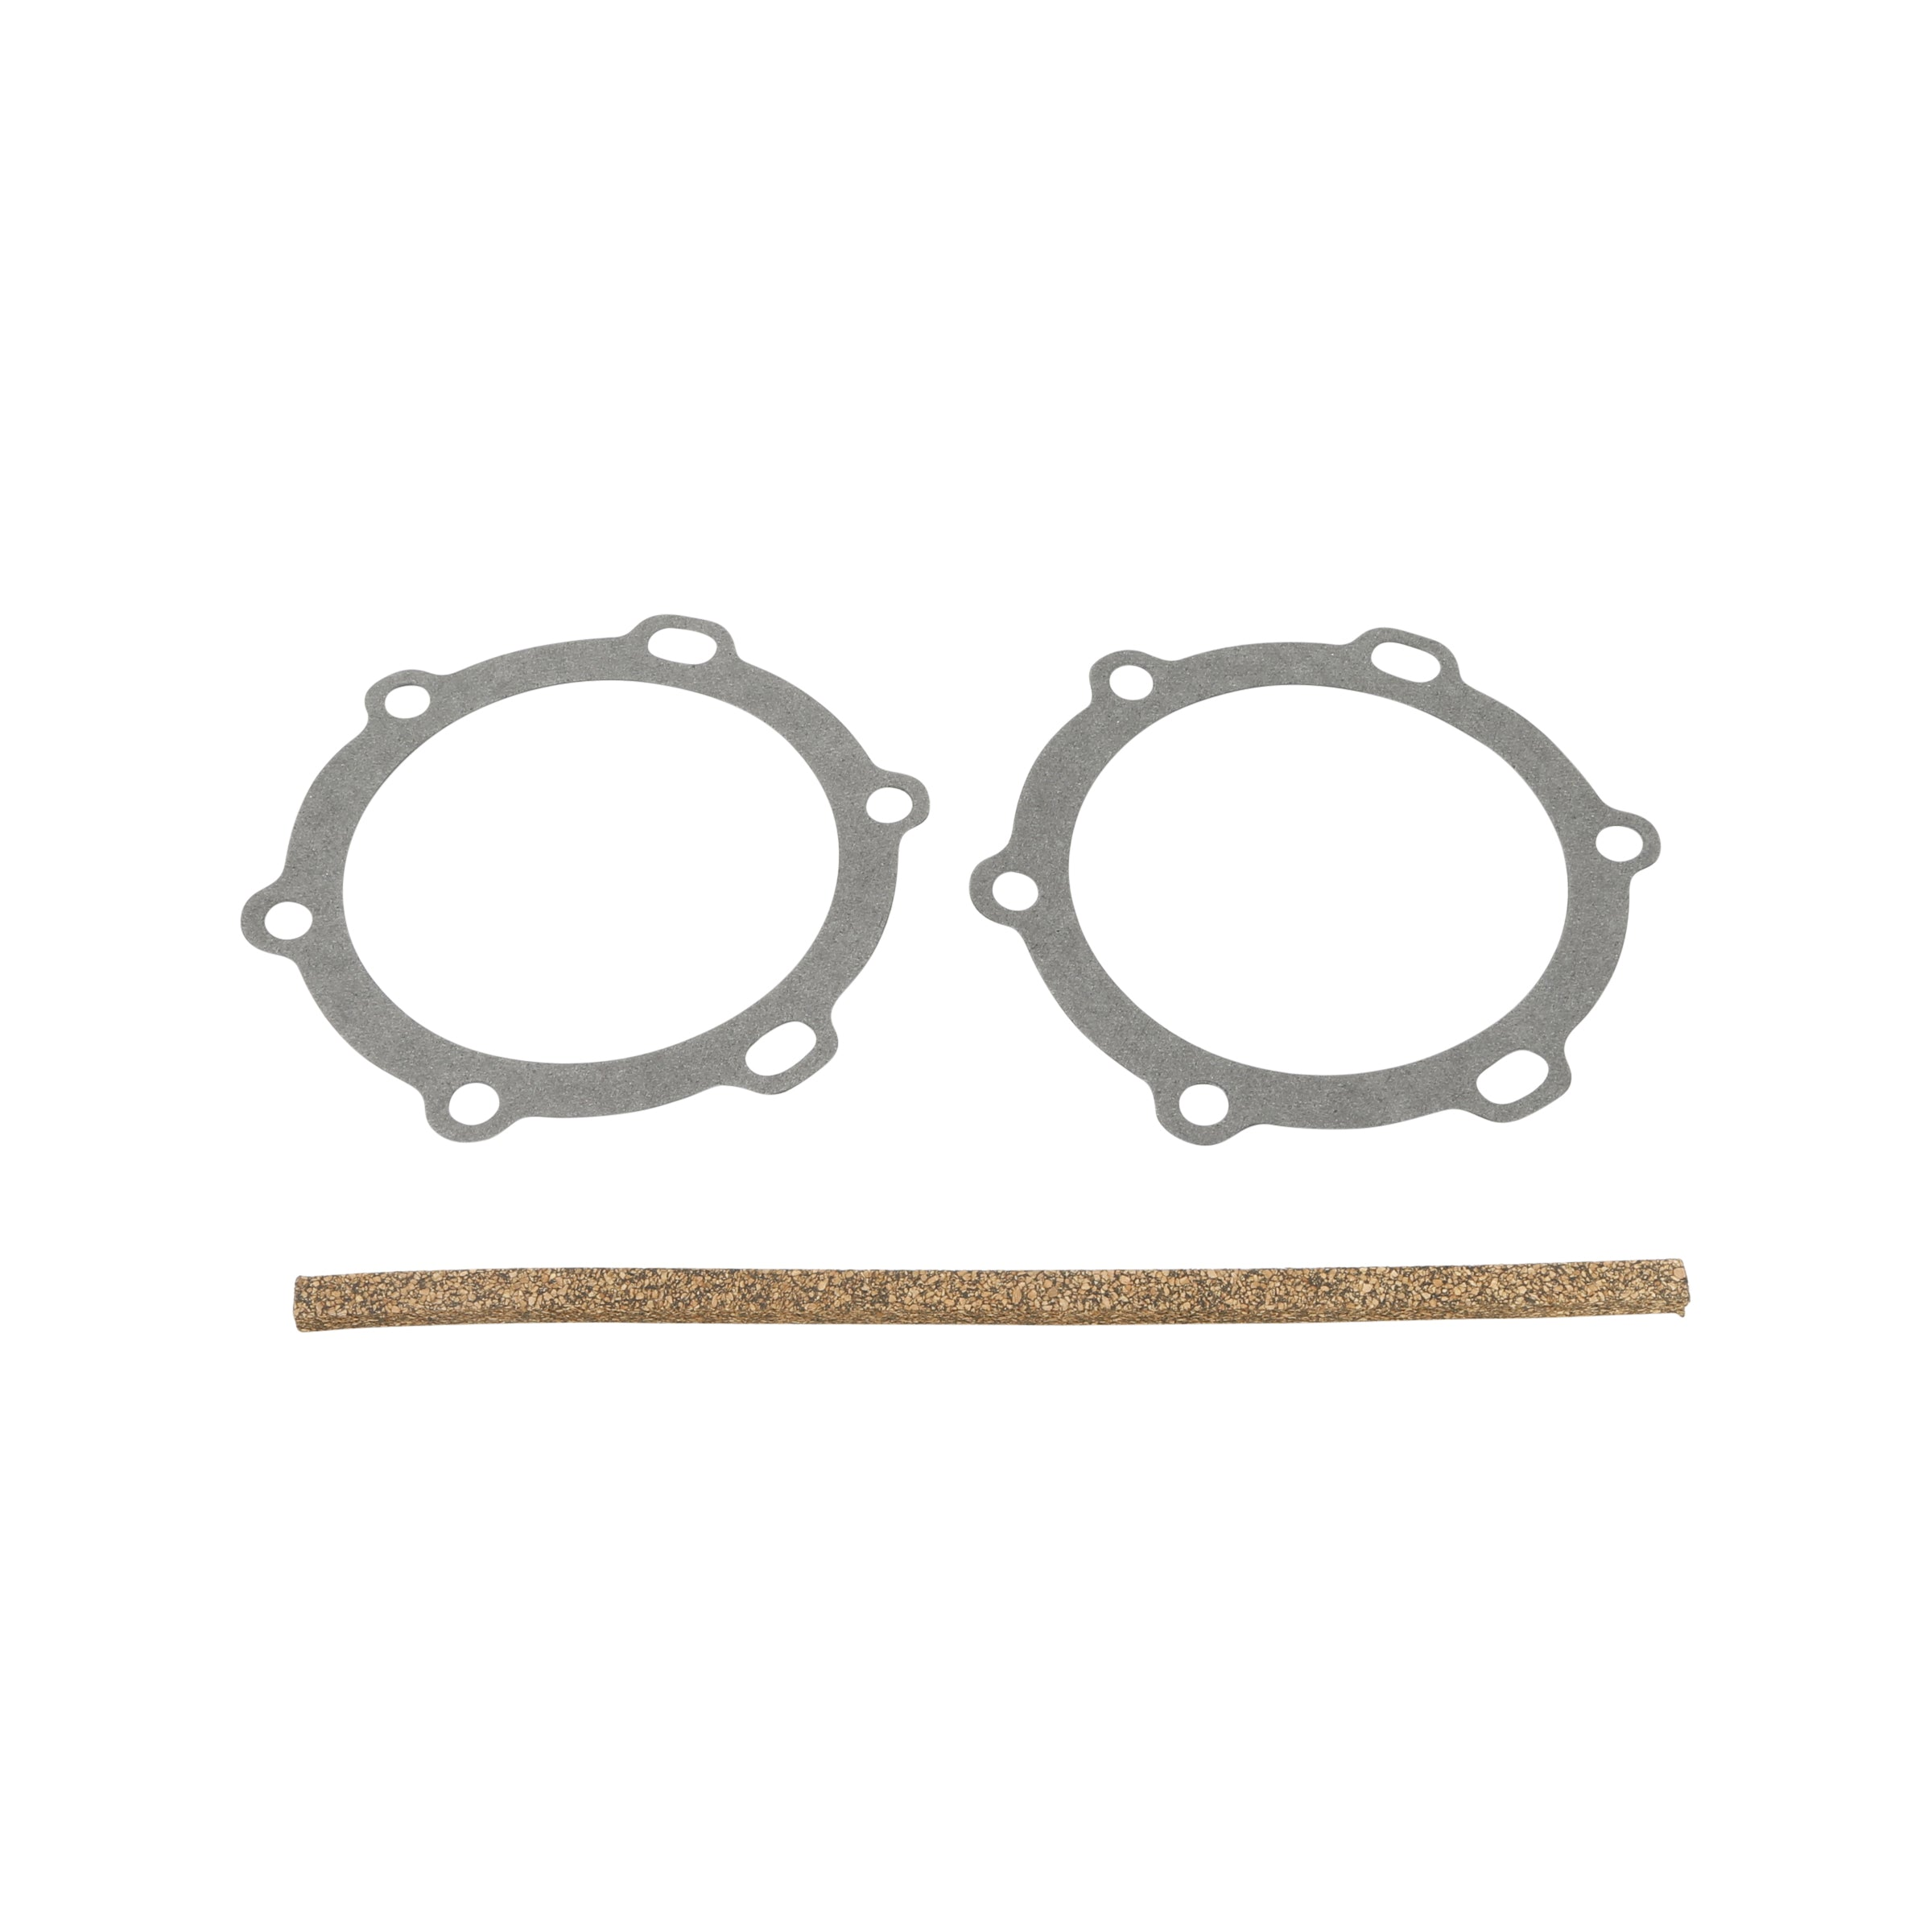 Universal Joint Gasket Set • 1928-31 Model A Ford